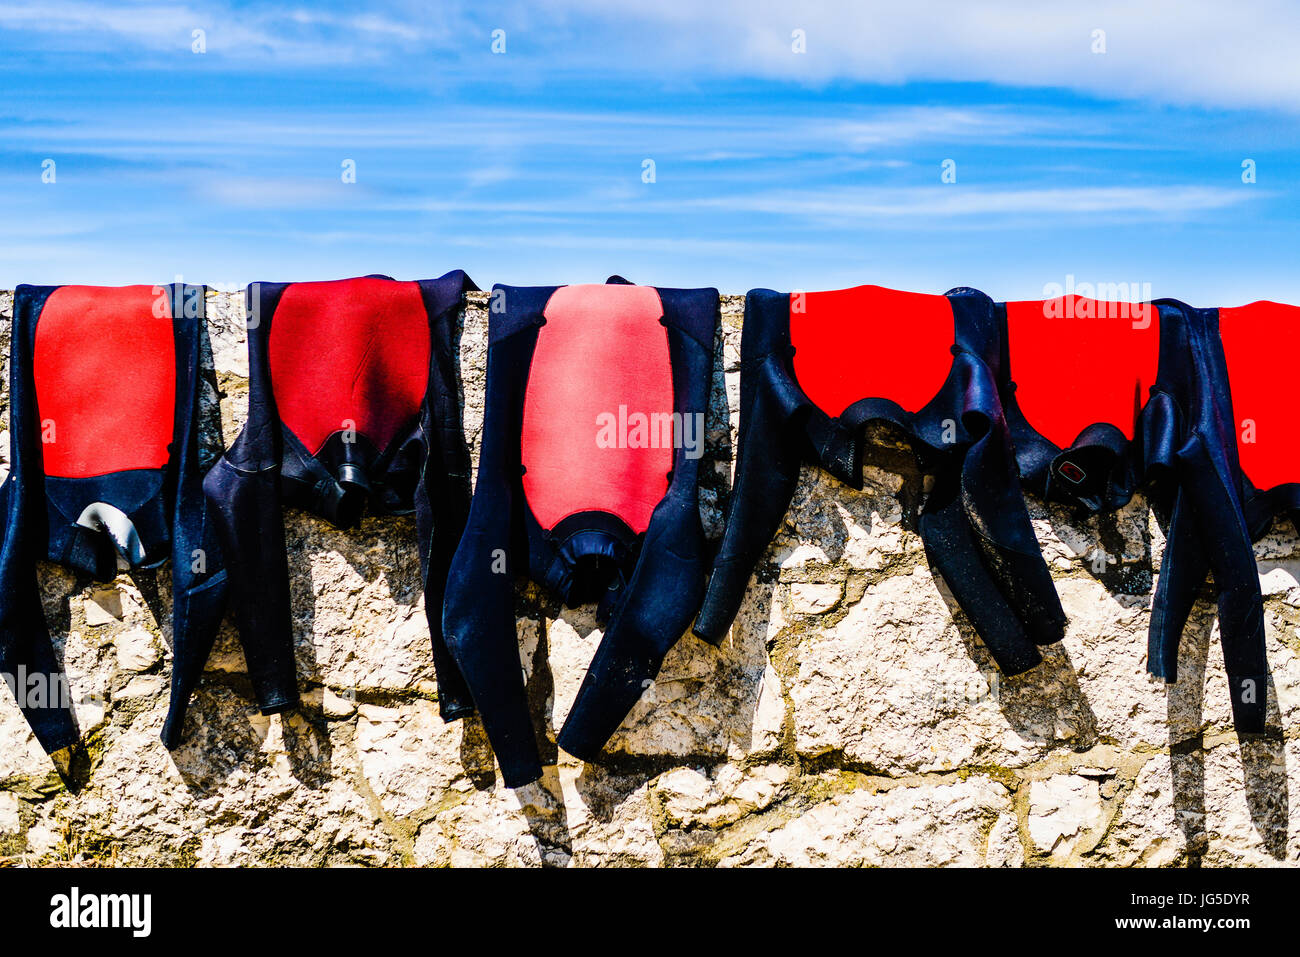 Wetsuits drying on a coastal stone wall. - Stock Image